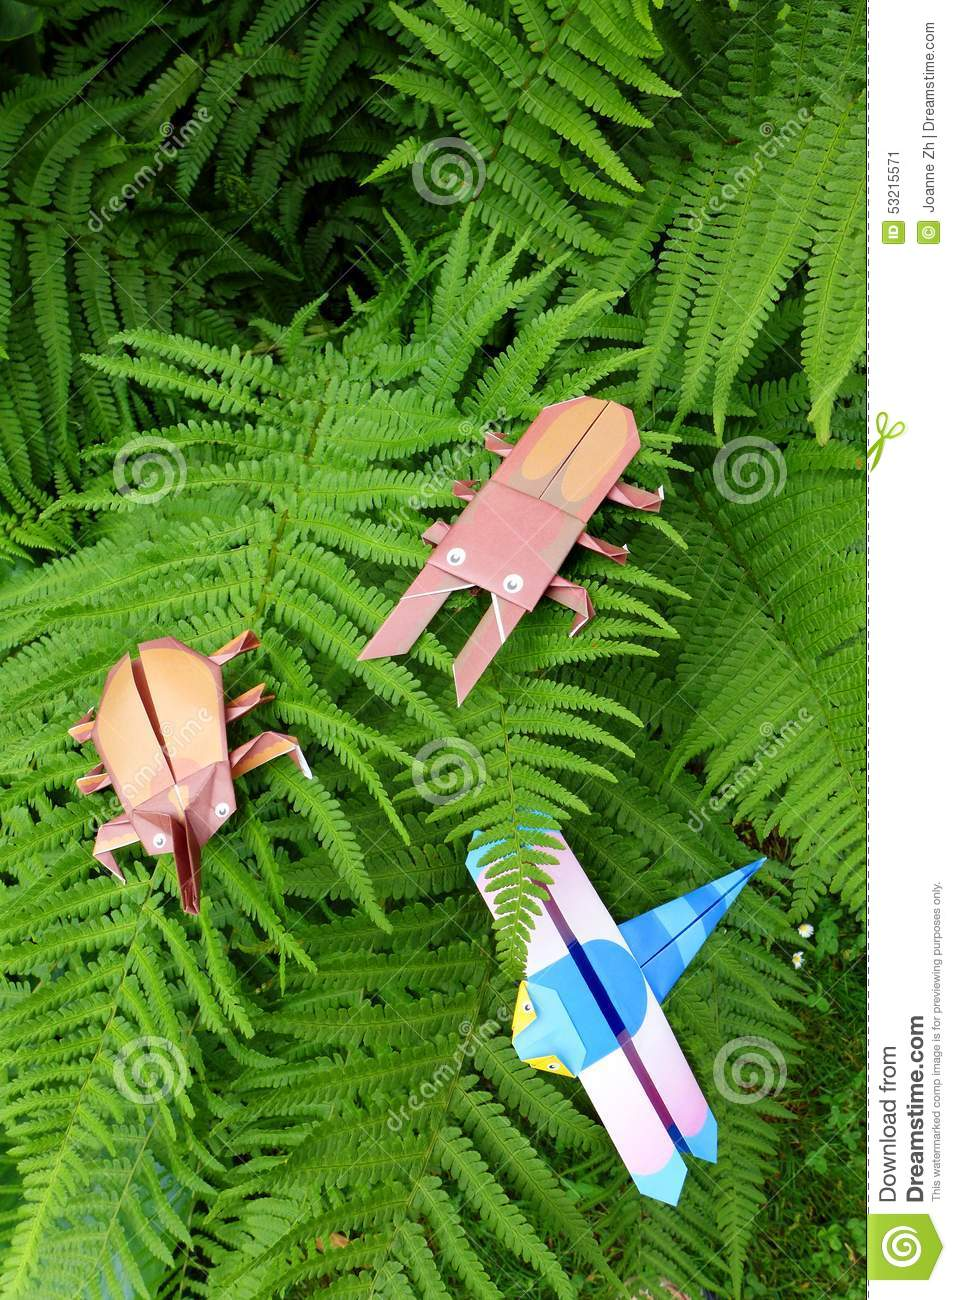 Origami Insects On Fern Leaves Stock Image Image Of Crafts